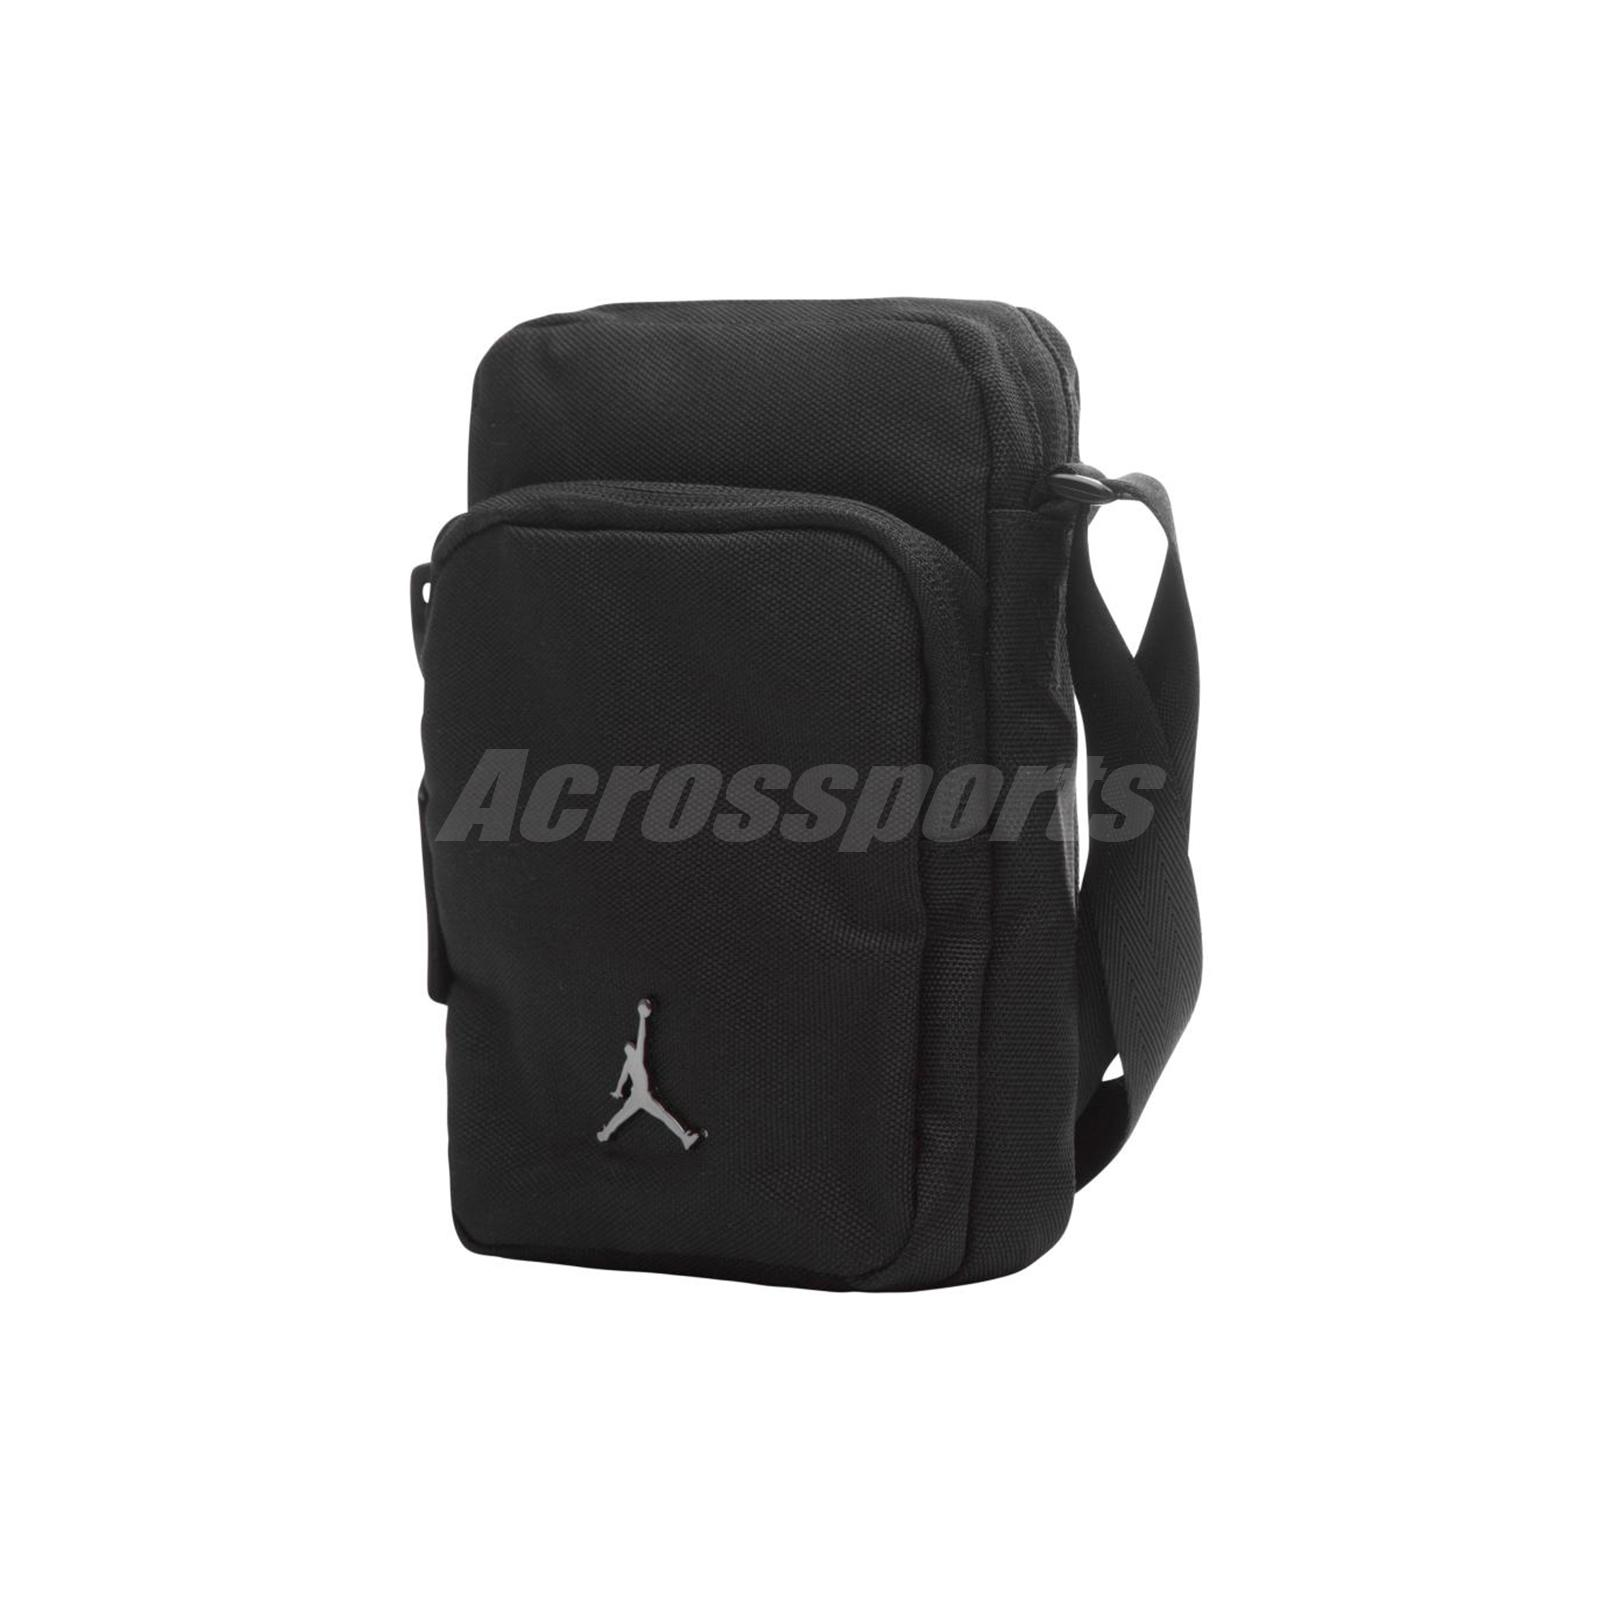 Nike Jordan Airborne Crossbody Shoulder Bag Small Mini Handbag Black ... 90d88e768